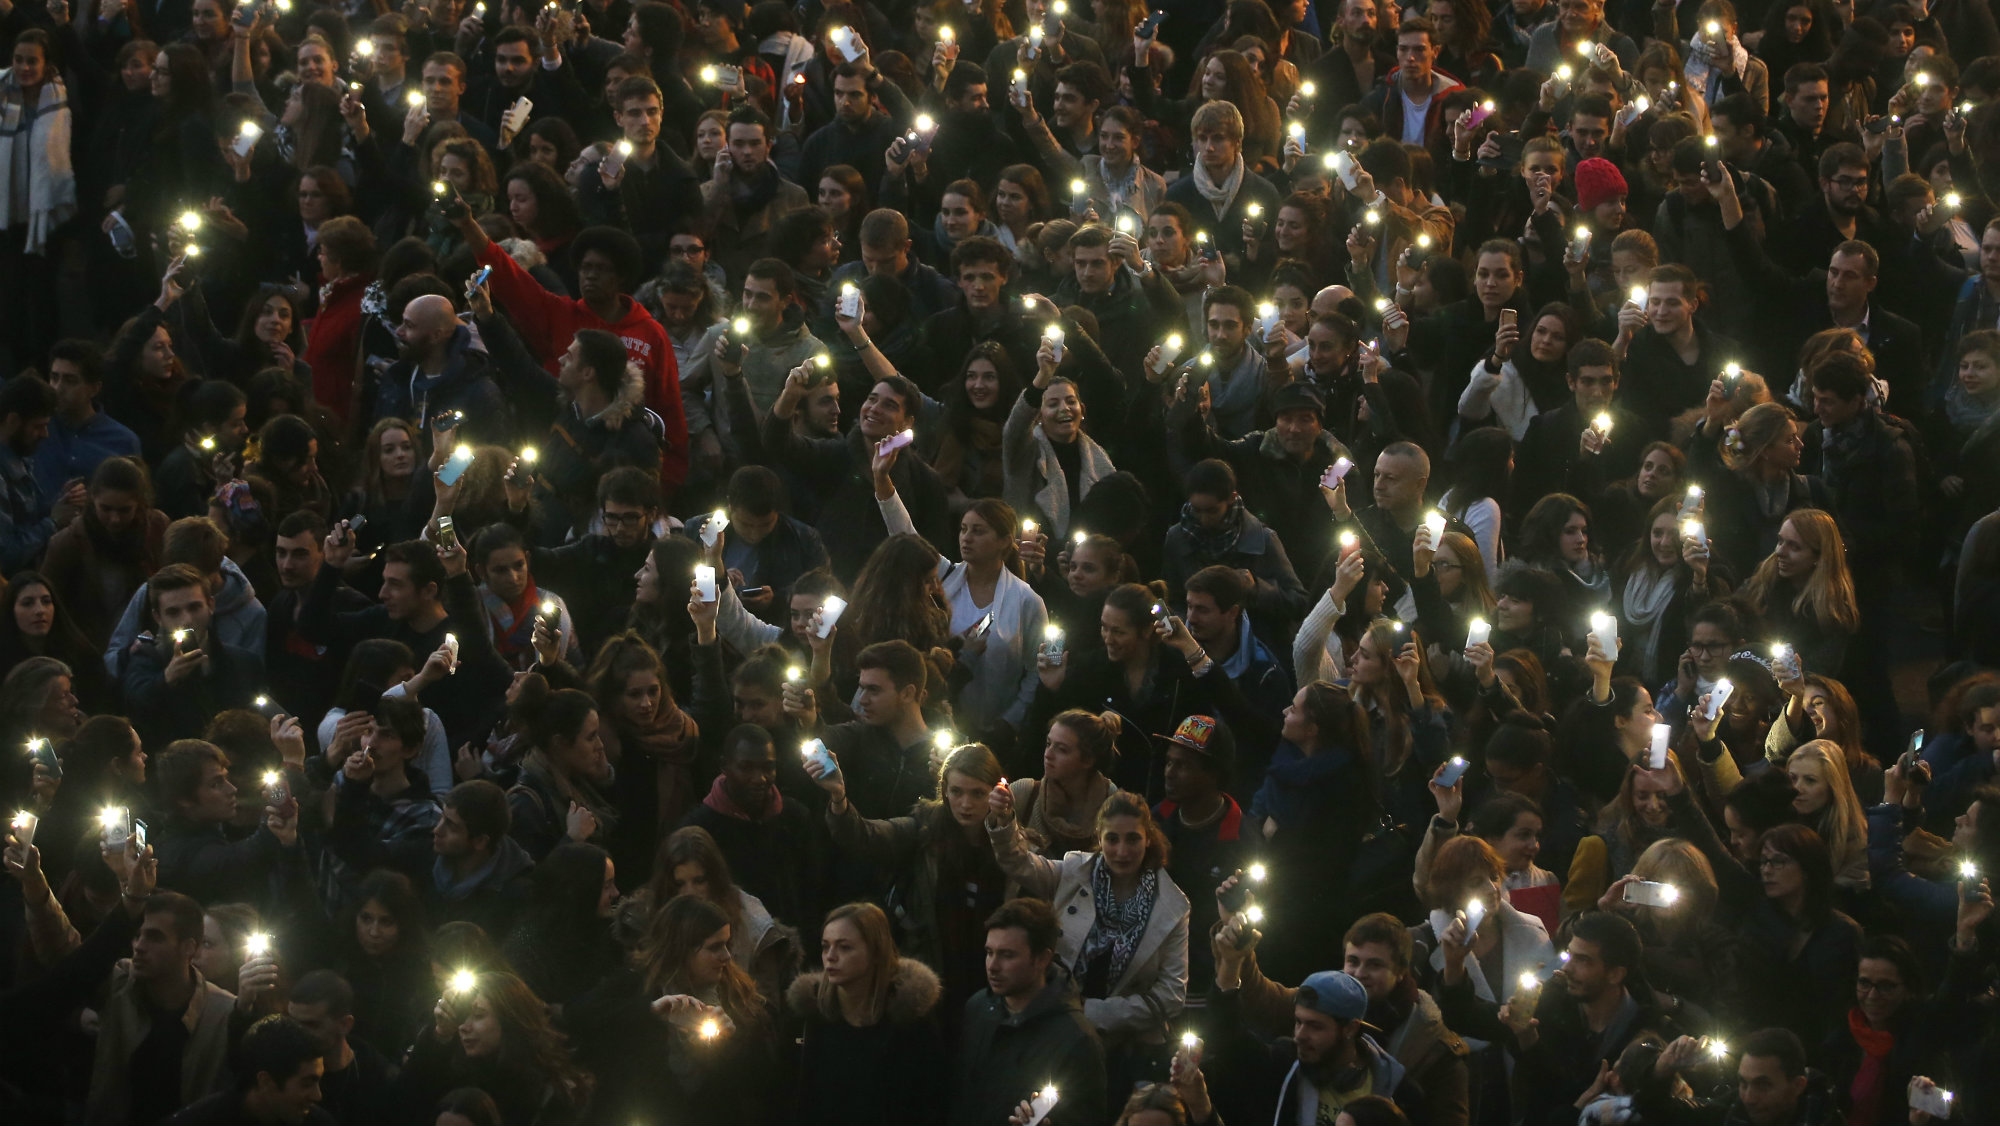 People light their mobile phones during a vigil.